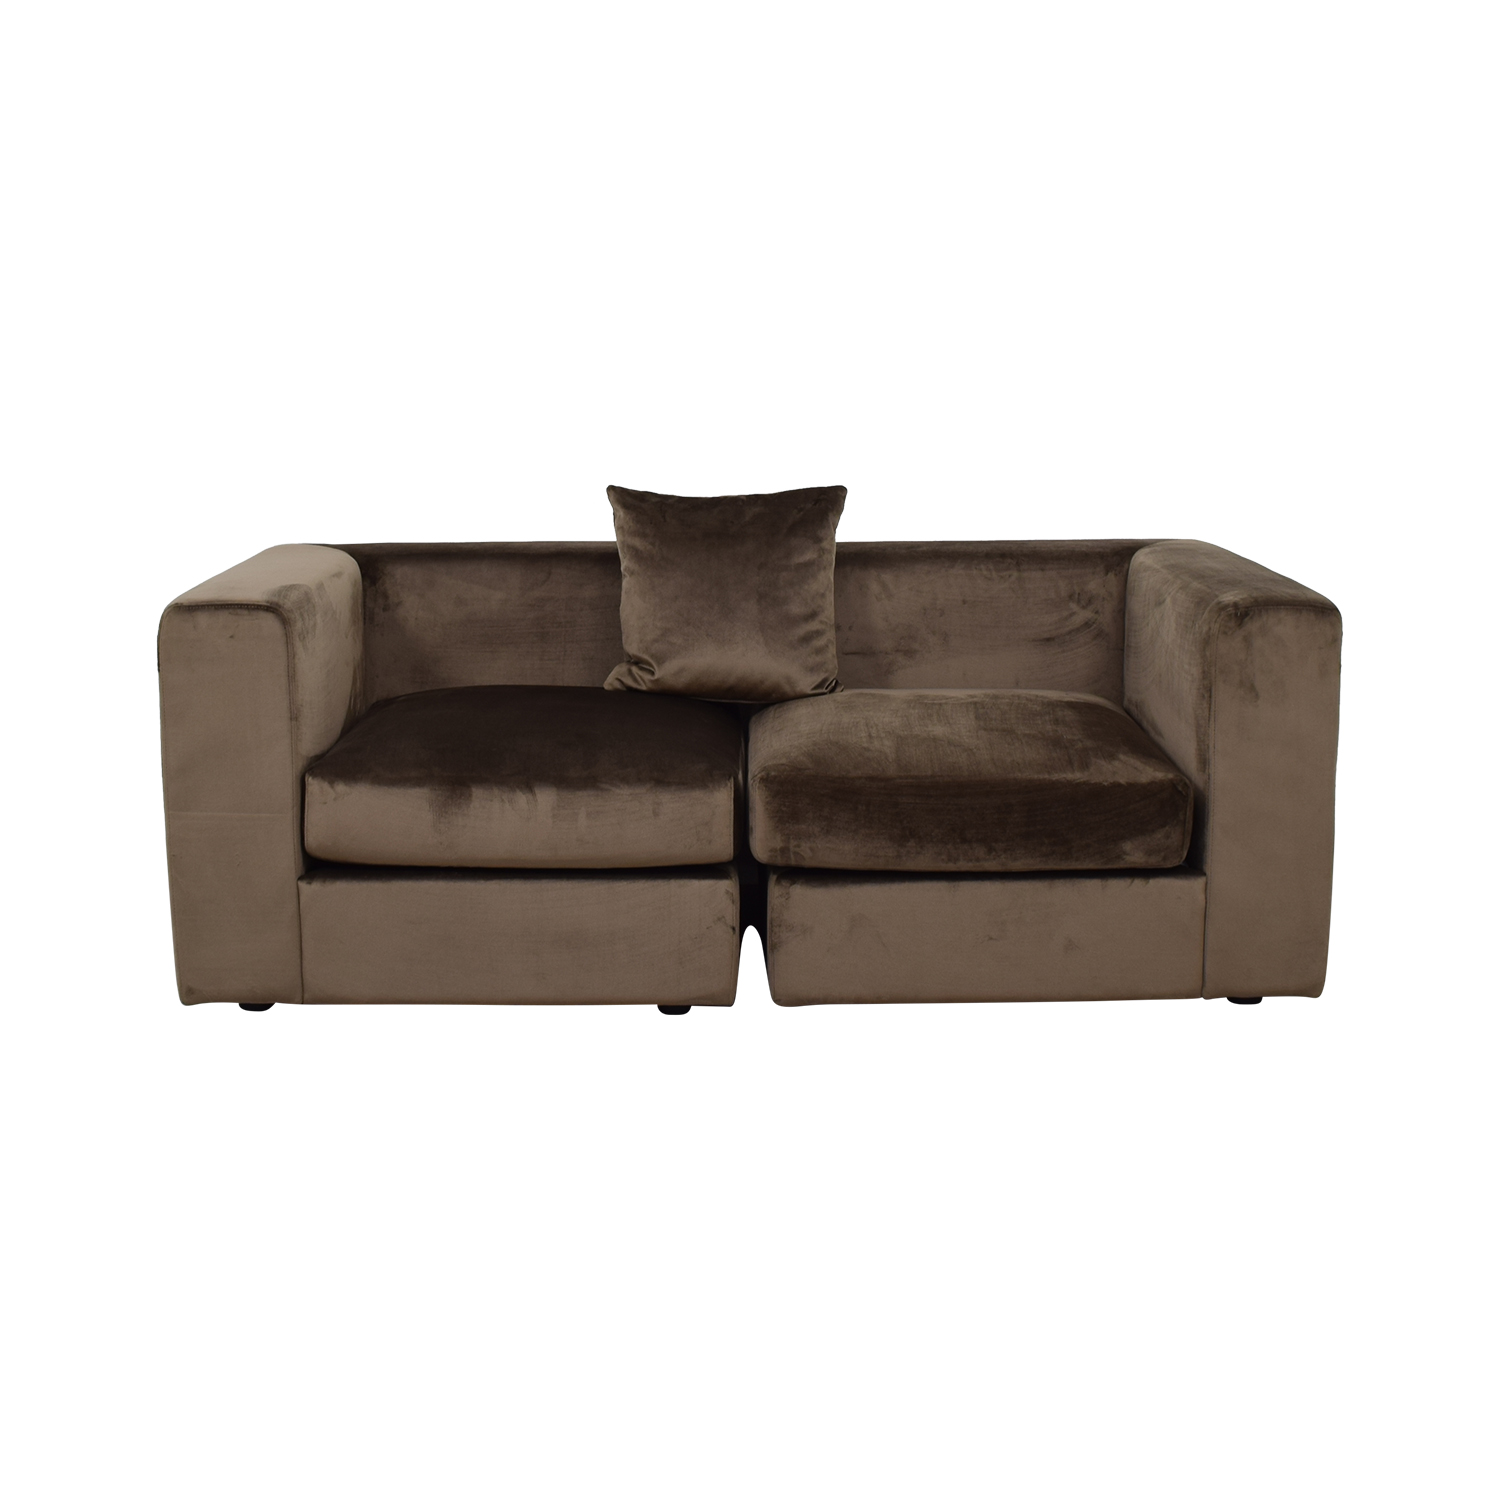 Toby Quartz Mod Velvet Two-Cushion Sofa coupon